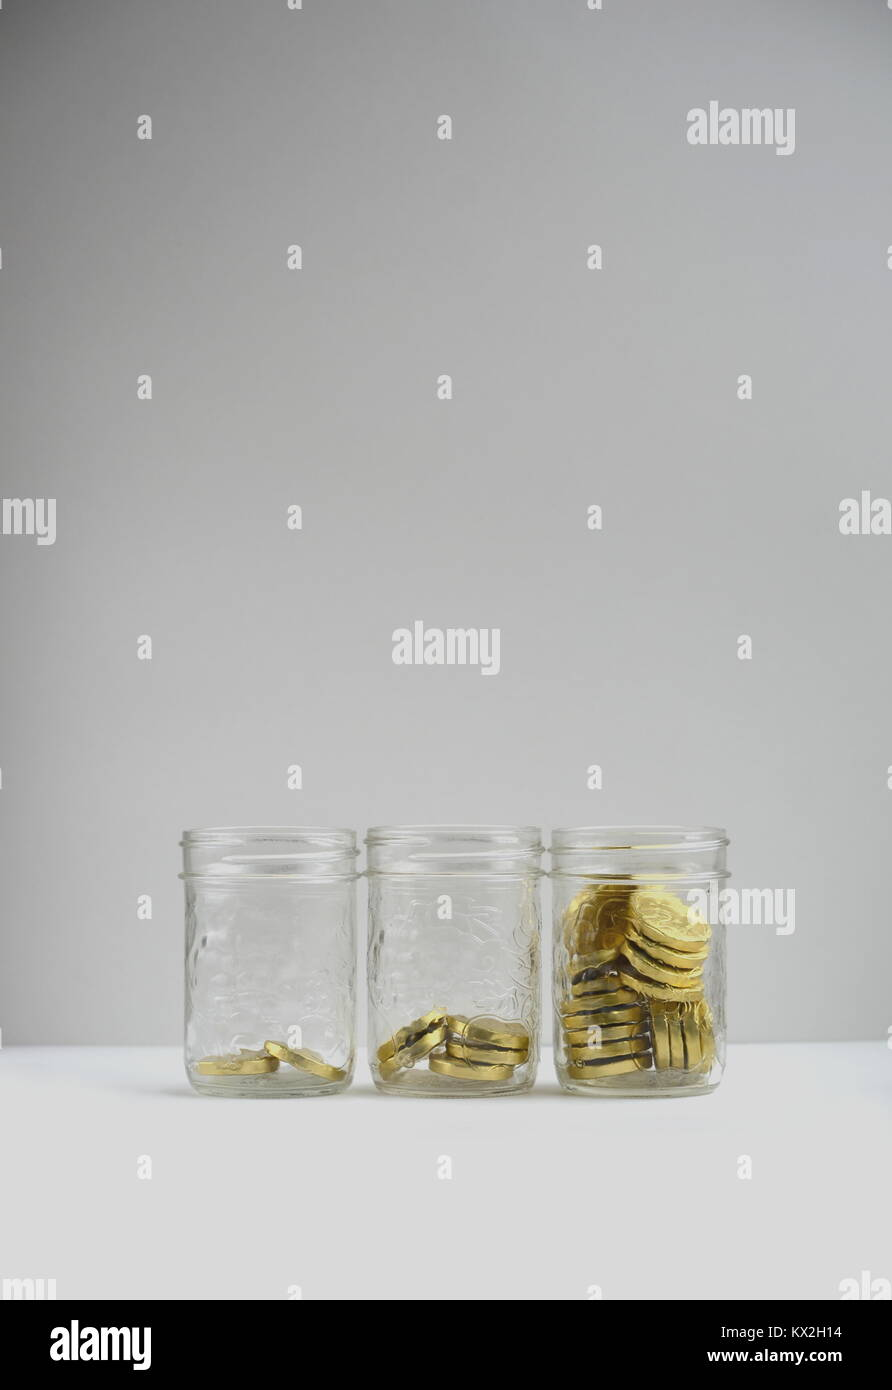 Three glass jars filled with gold coins and plenty of copy space. Investment, finance, revenue and savings concept. - Stock Image